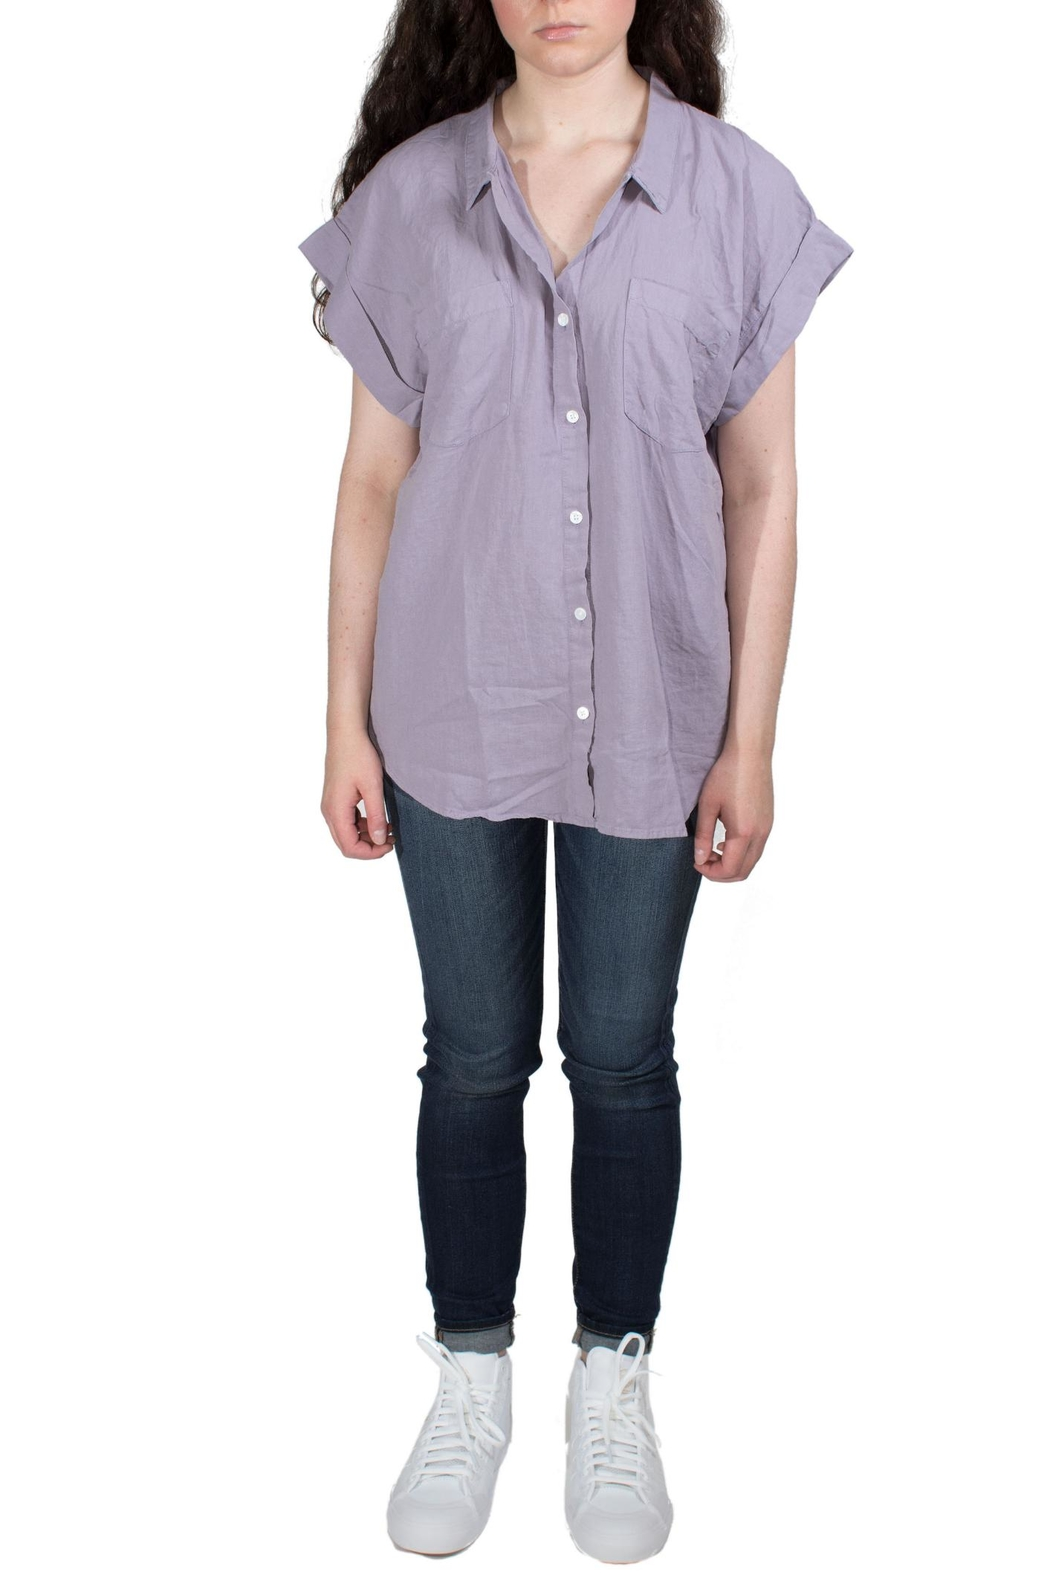 Thread & Supply Zuma Purple Shirt - Front Cropped Image